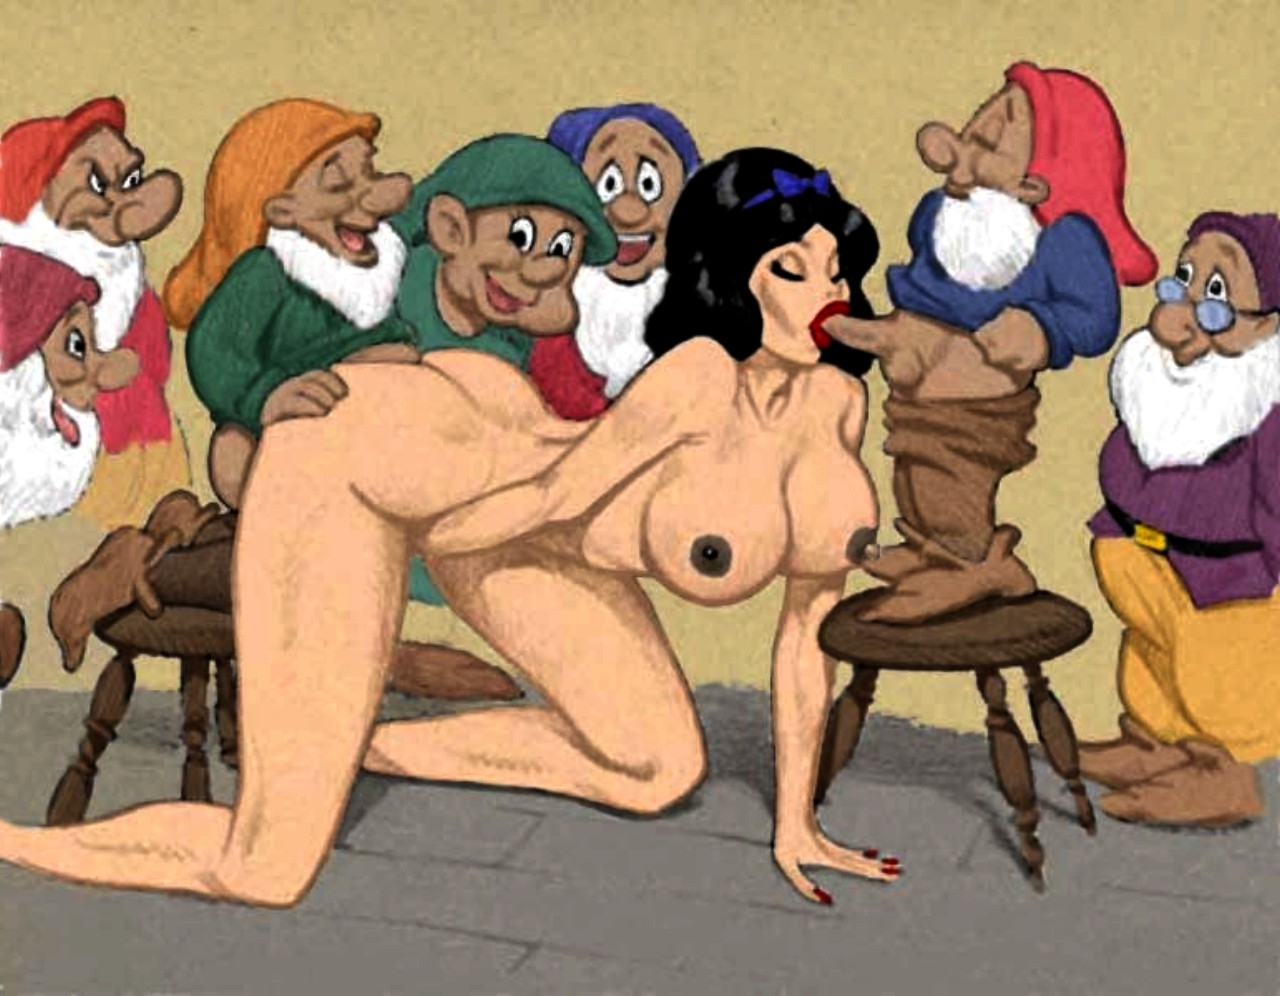 Snow white and the 7 dwarfs porno hentia clip